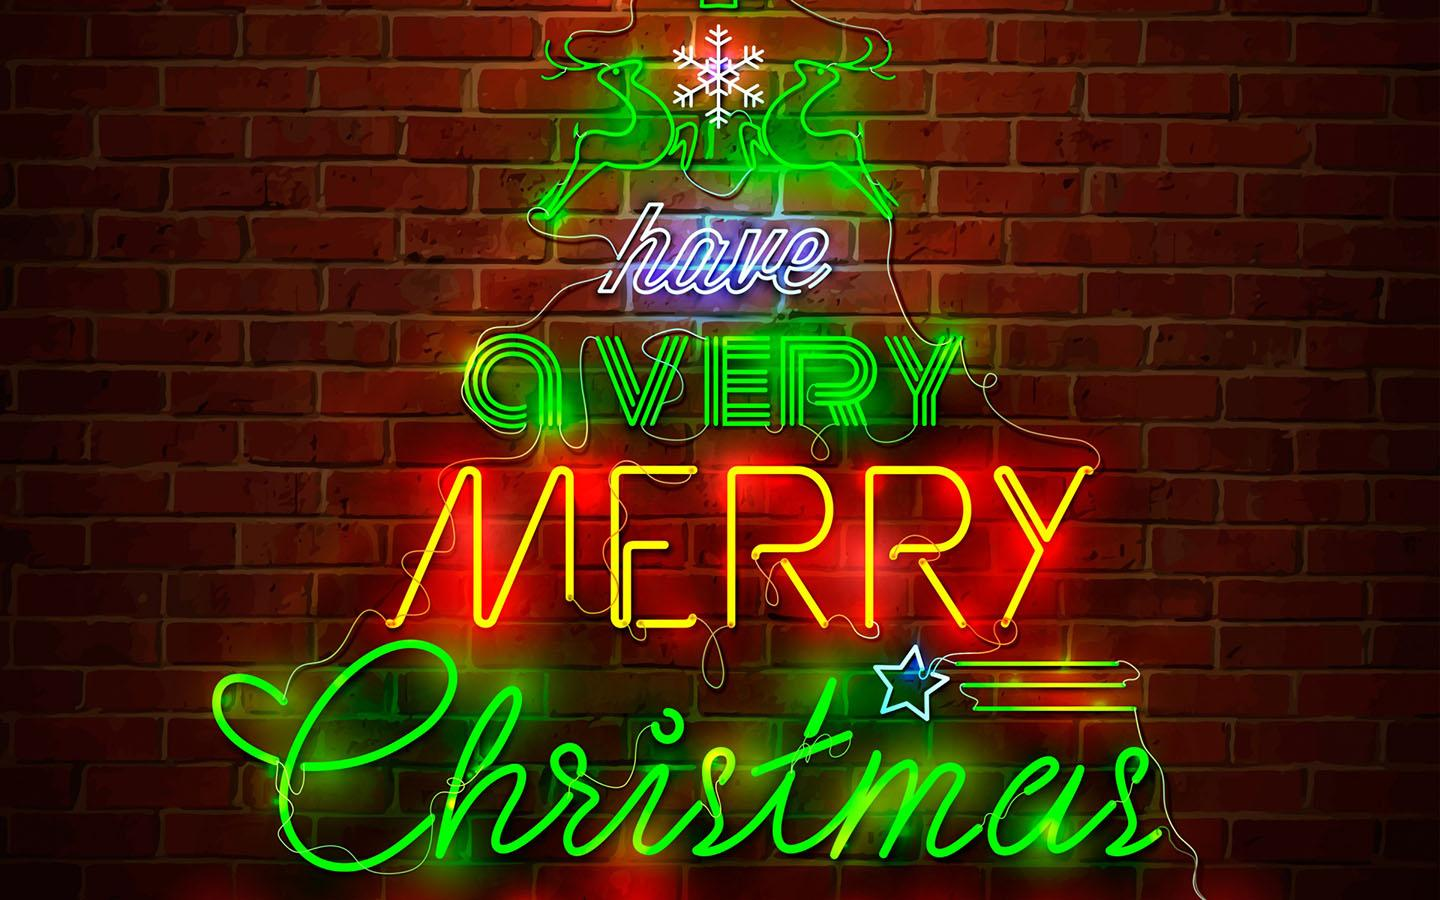 free christmas wallpaper for android phone 41BK | lyybj